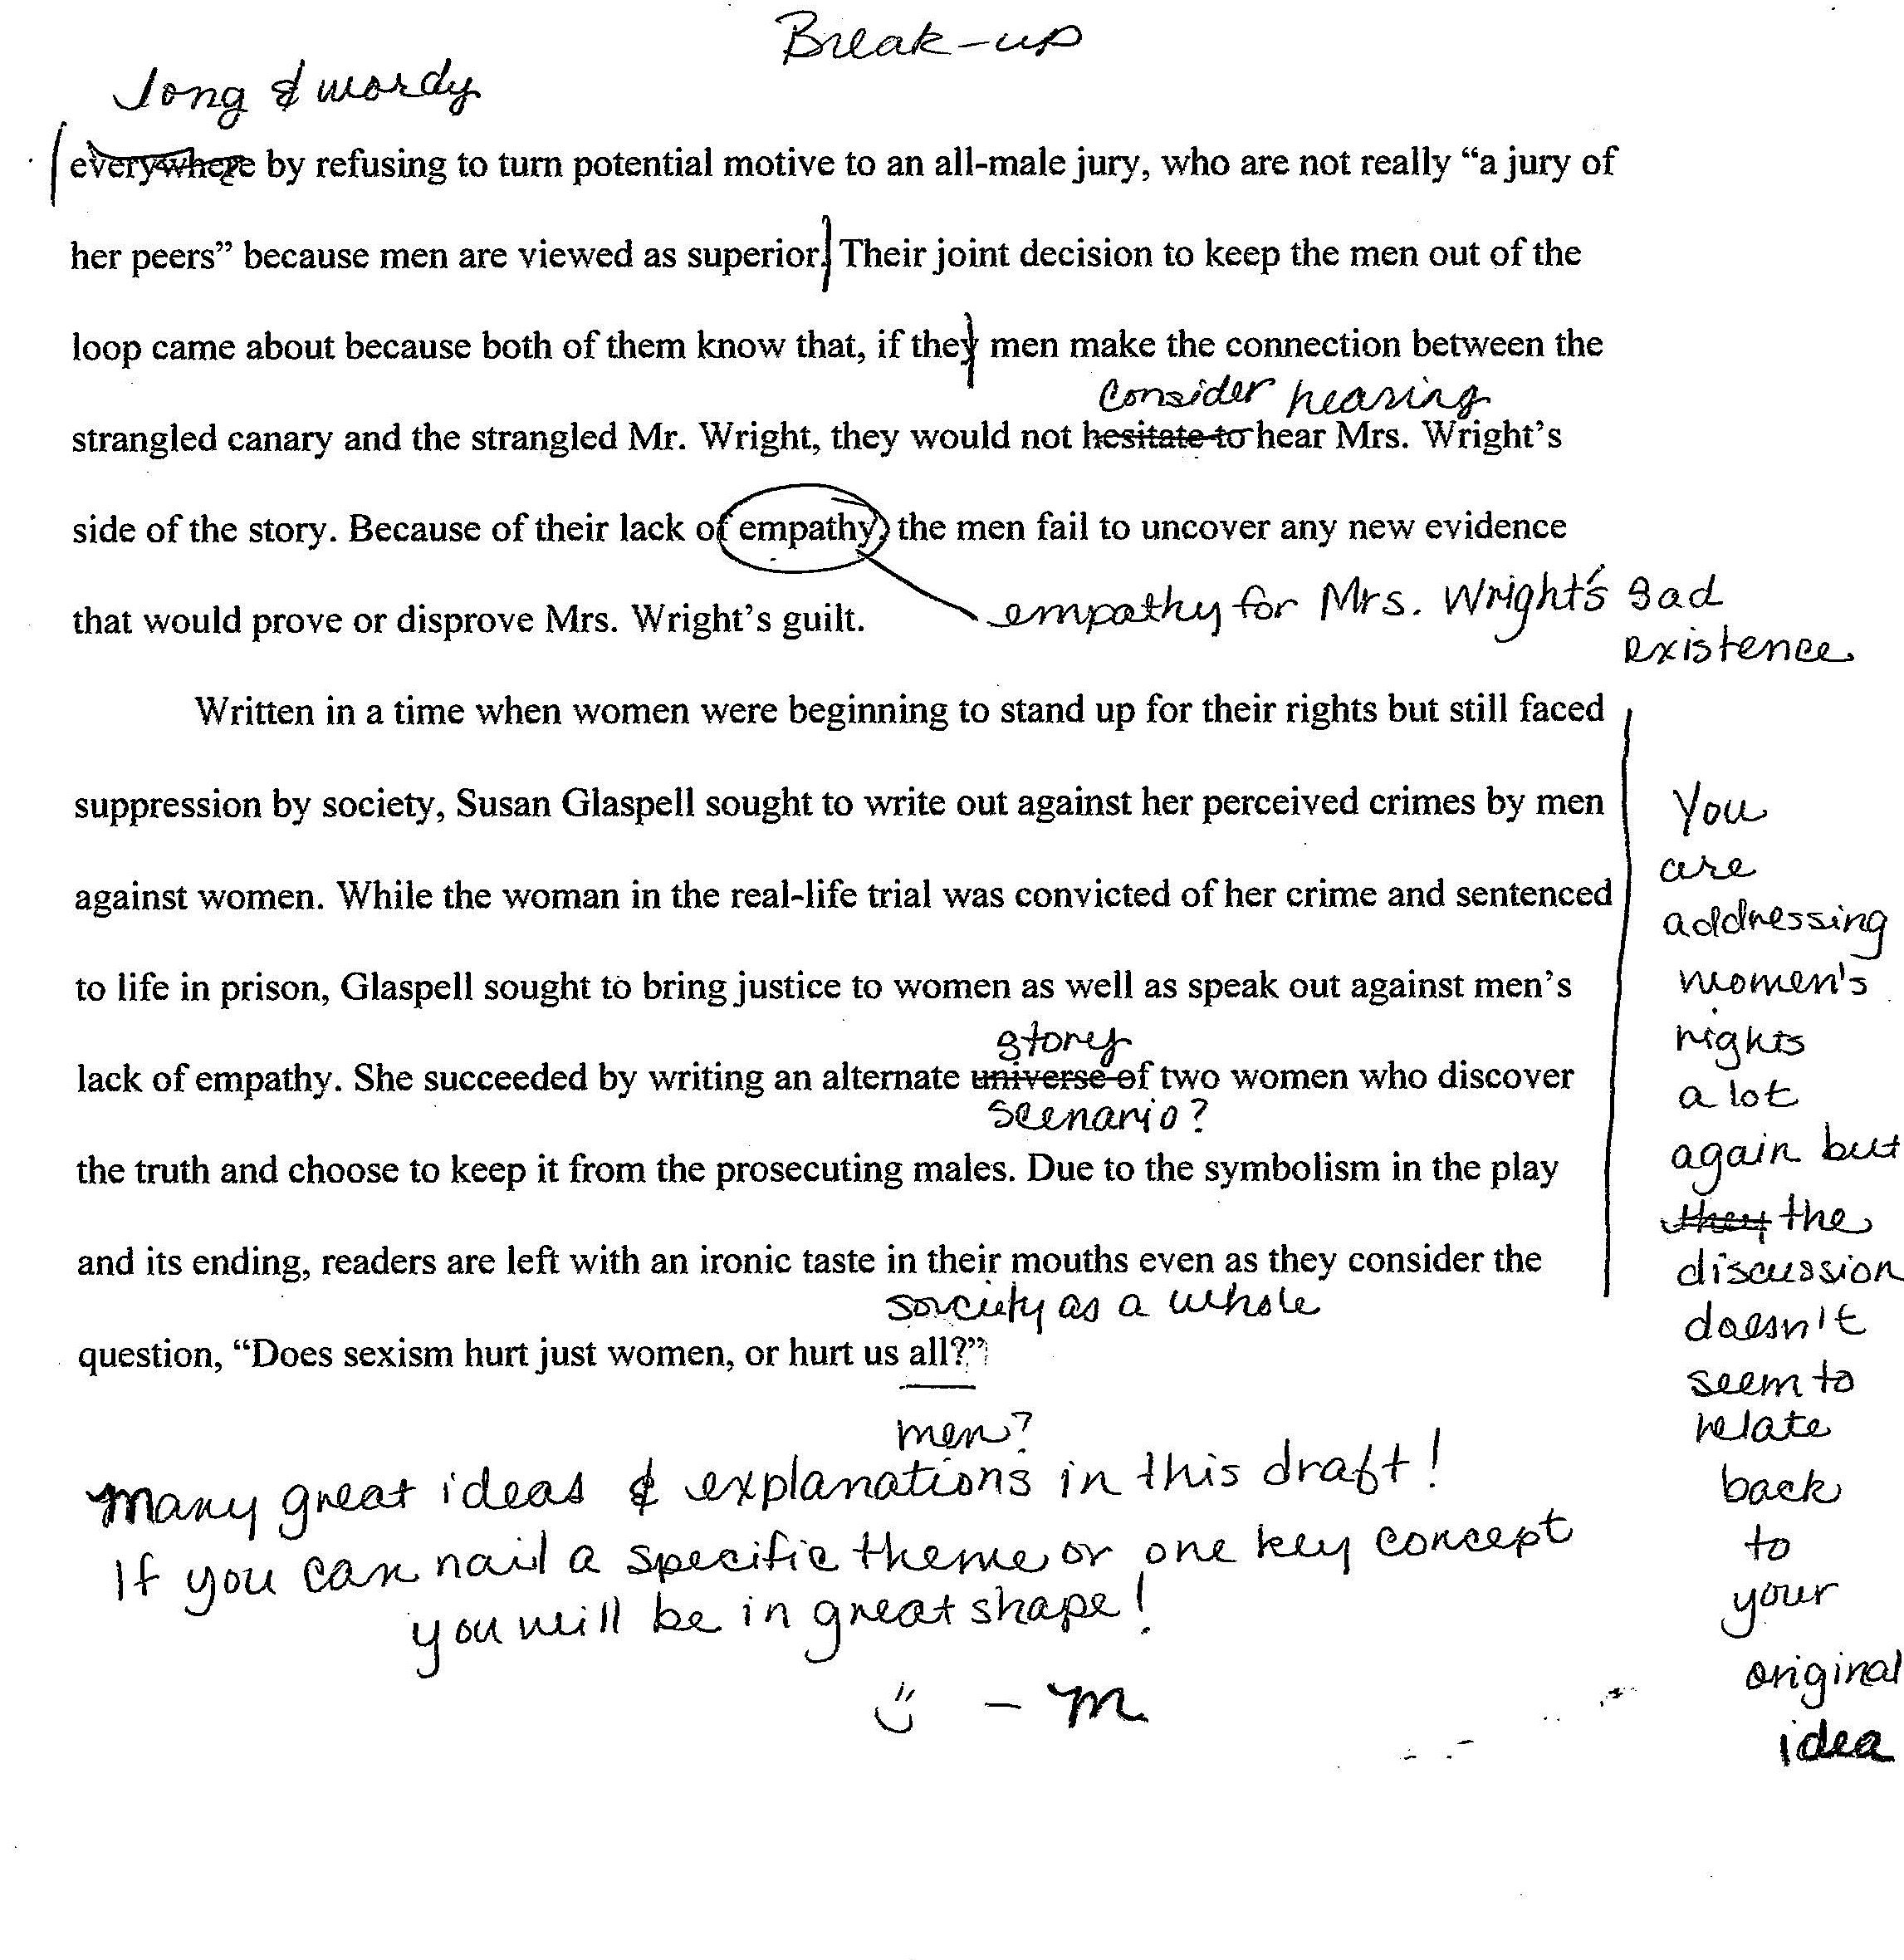 008 Essay Example Img032 College Editing Unusual Service Application Services Free Full